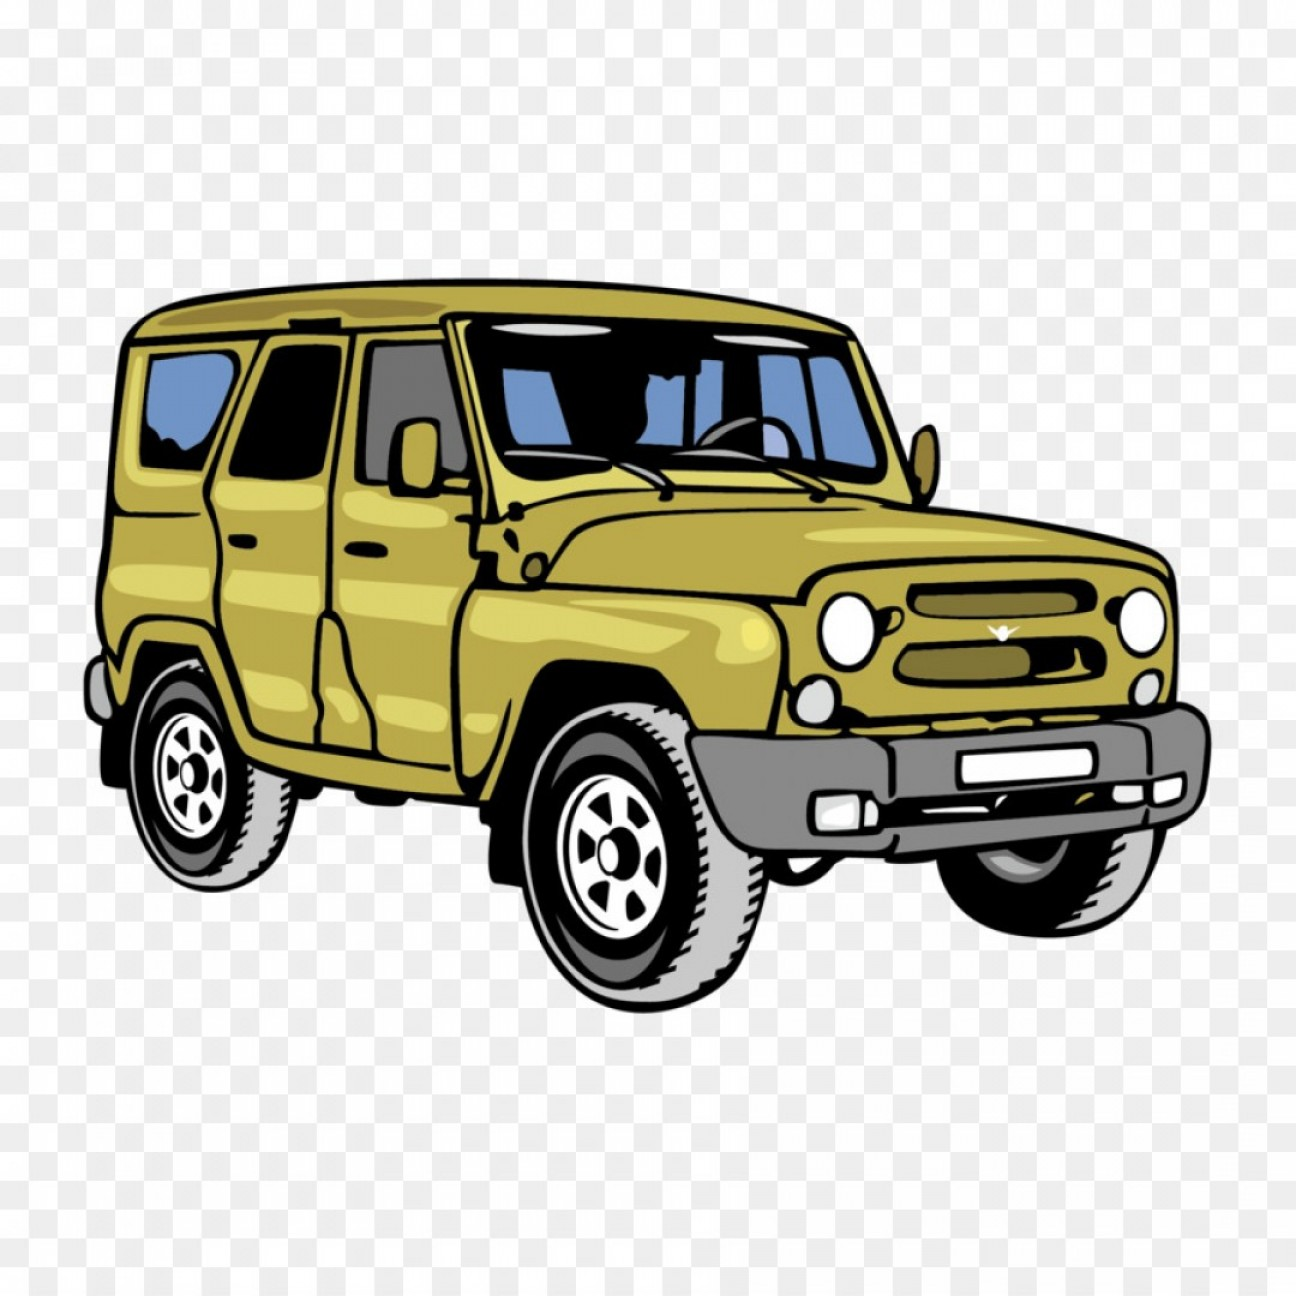 Vector Clip Art Of Jeep: Png Jeep Car Off Road Vehicle Green Jeep Vector Materi